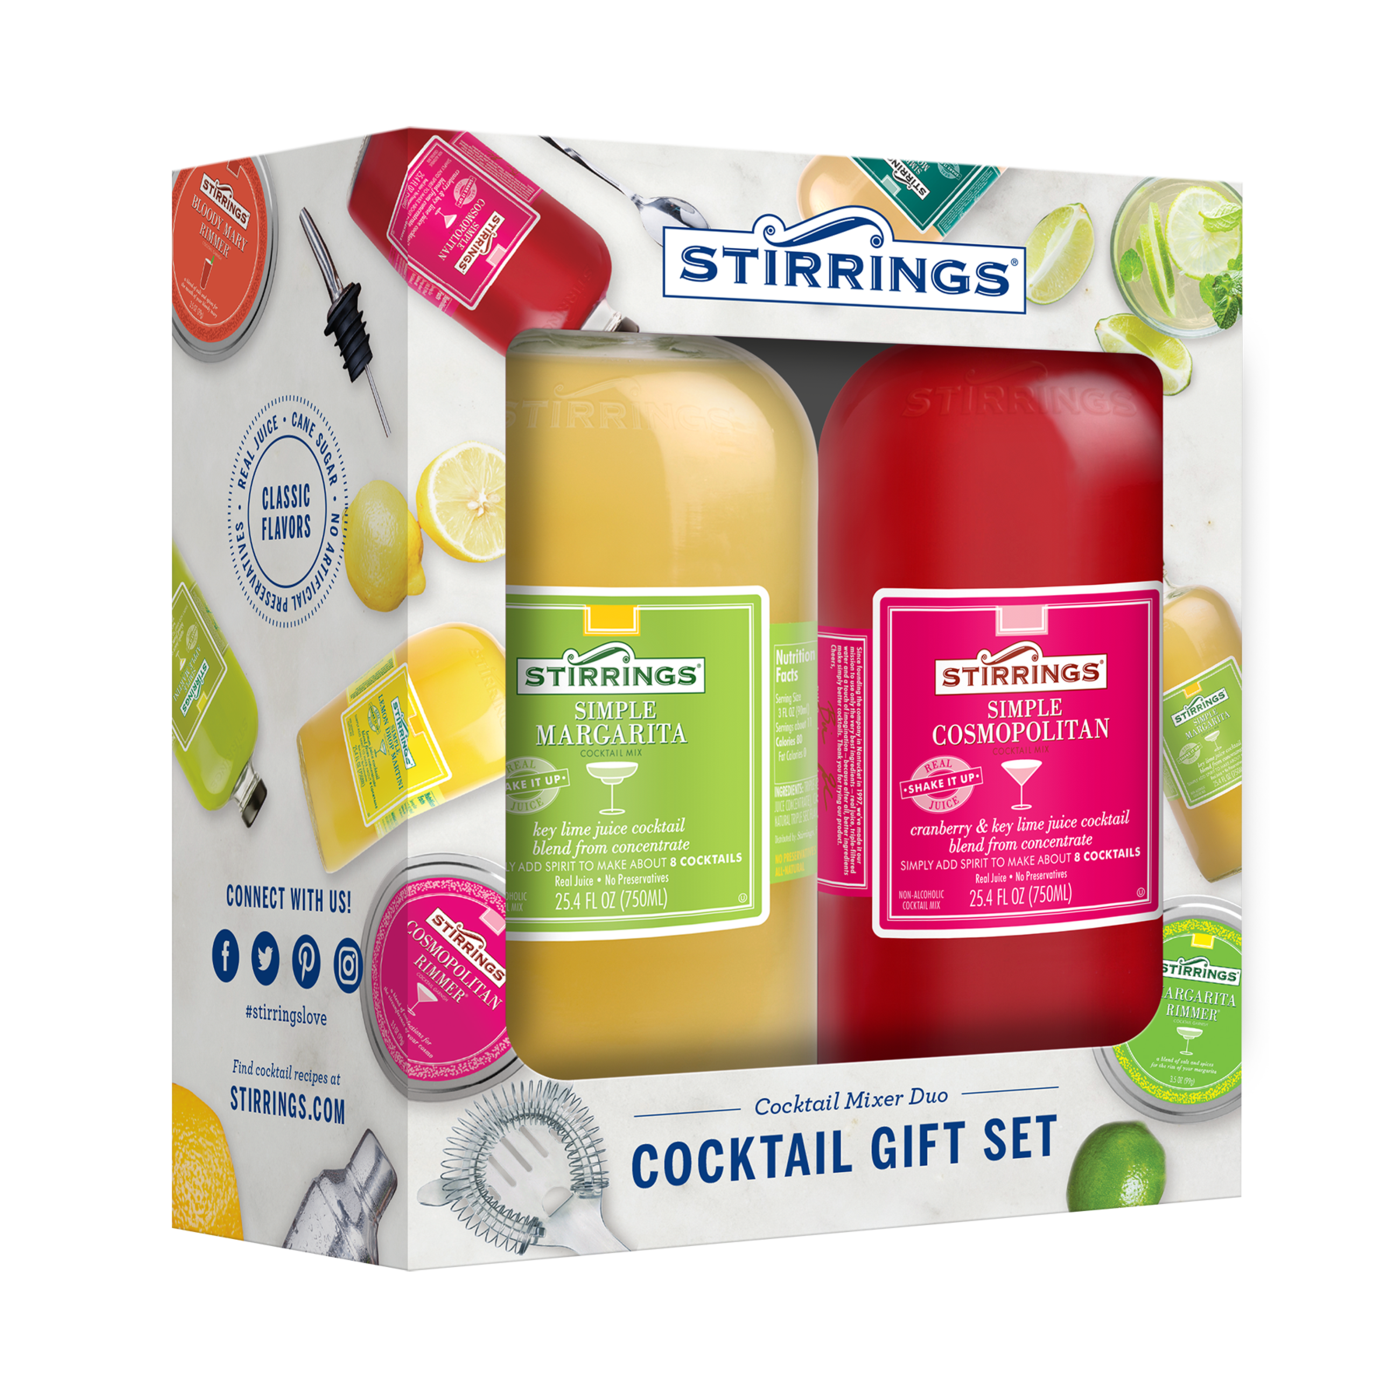 22. Stirrings Cocktail Mixer Duo Set - A perfect holiday host gift to complete a friend's at-home bar, Stirrings Mixers offer a colorful and flavorful cocktail mixer, presented in a premium glass bottle, with a unique shape – a must for any bar cart! Choose any two flavors among options such as blood orange martini and lemon drop.